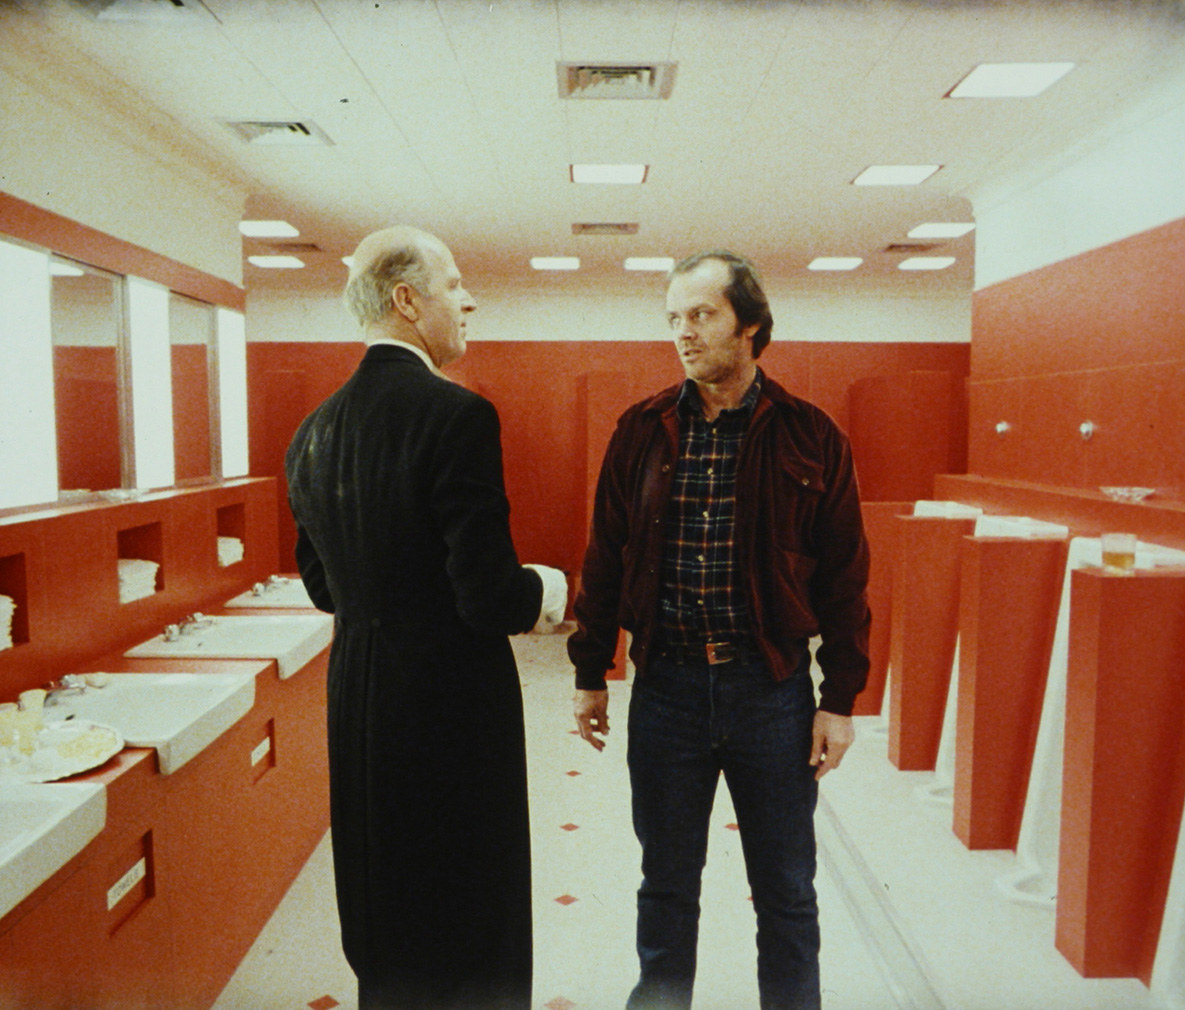 Bathroom set from <em>The Shining</em> (co) The Stanley Kubrick Archive